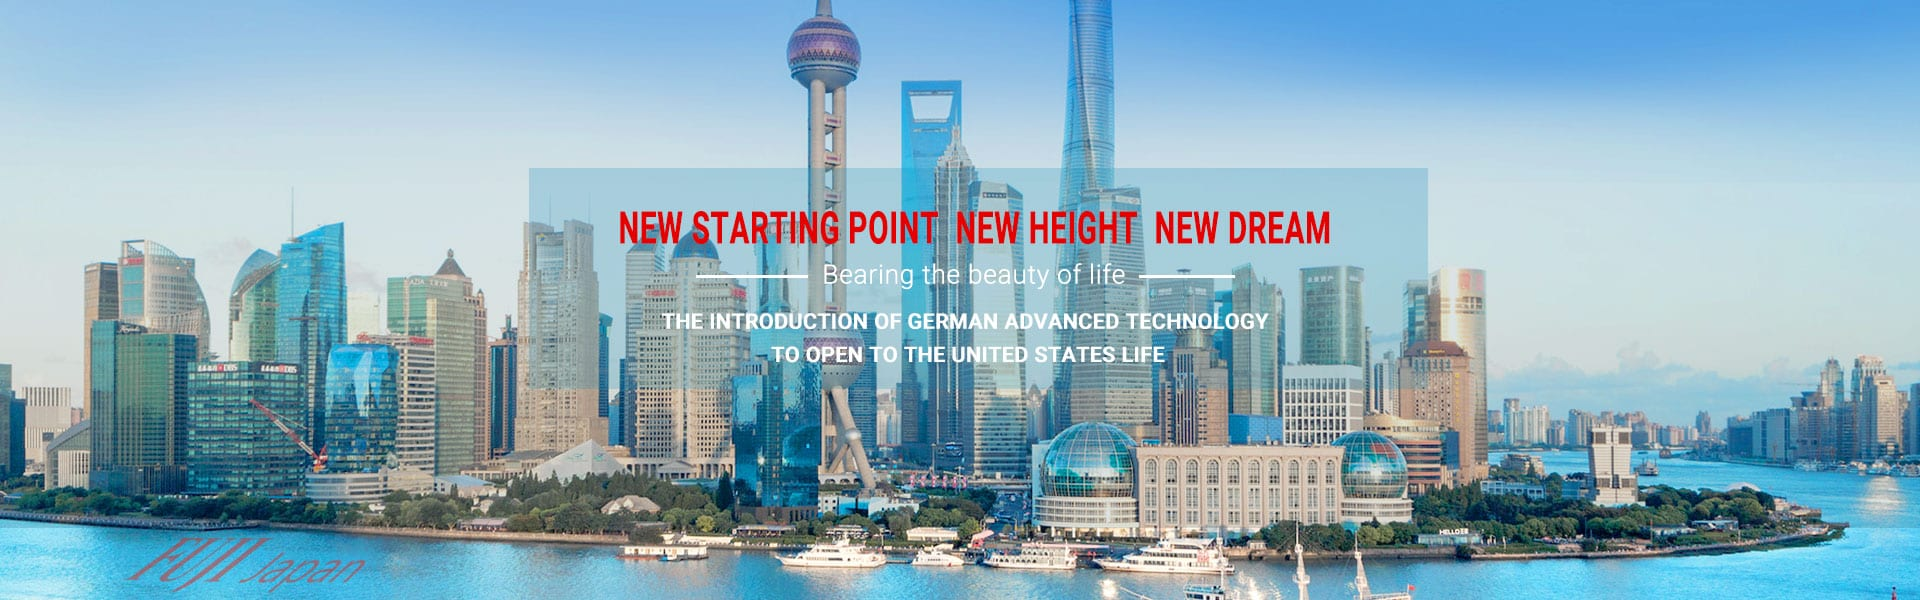 New starting point titun iga titun ala